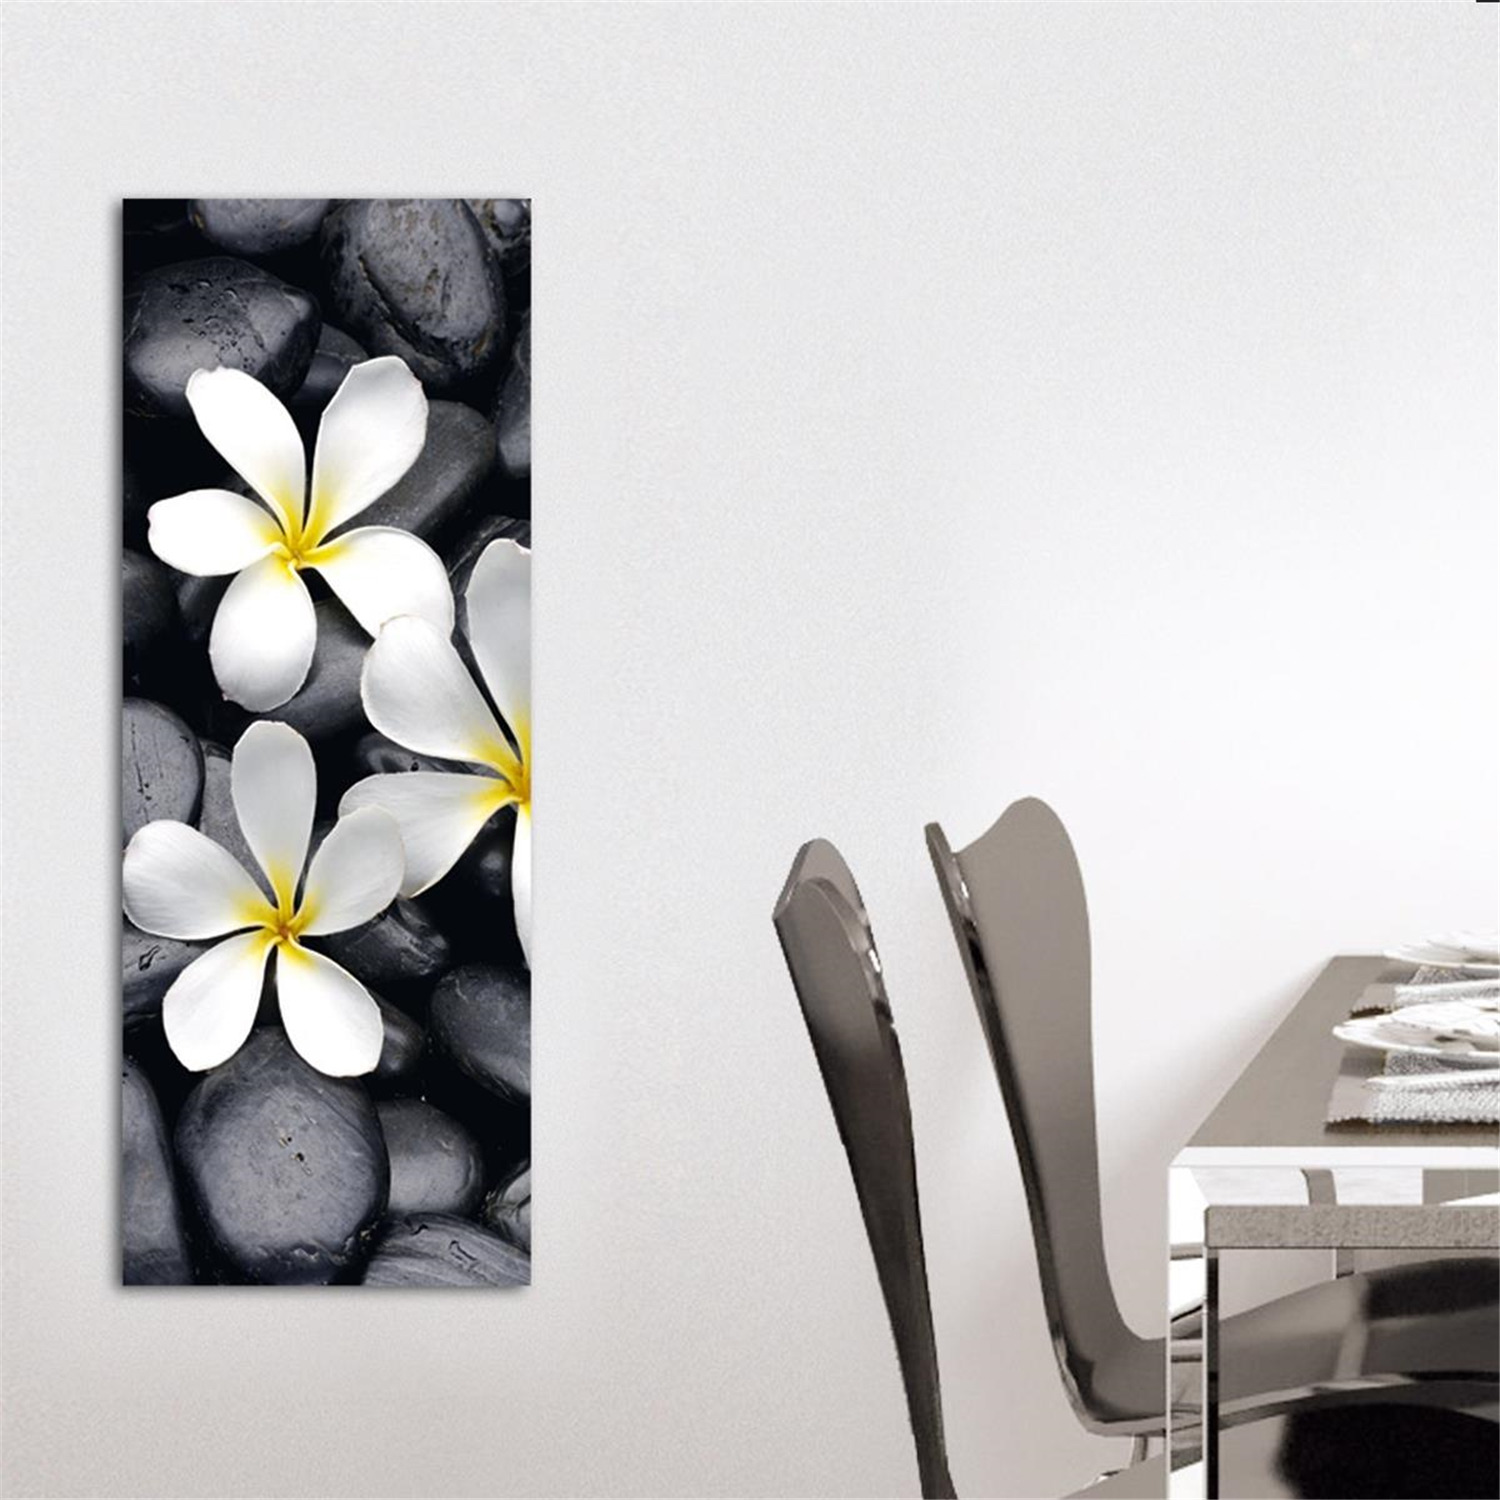 Platin art deco glass wall decor art on glass white for Art wall decoration